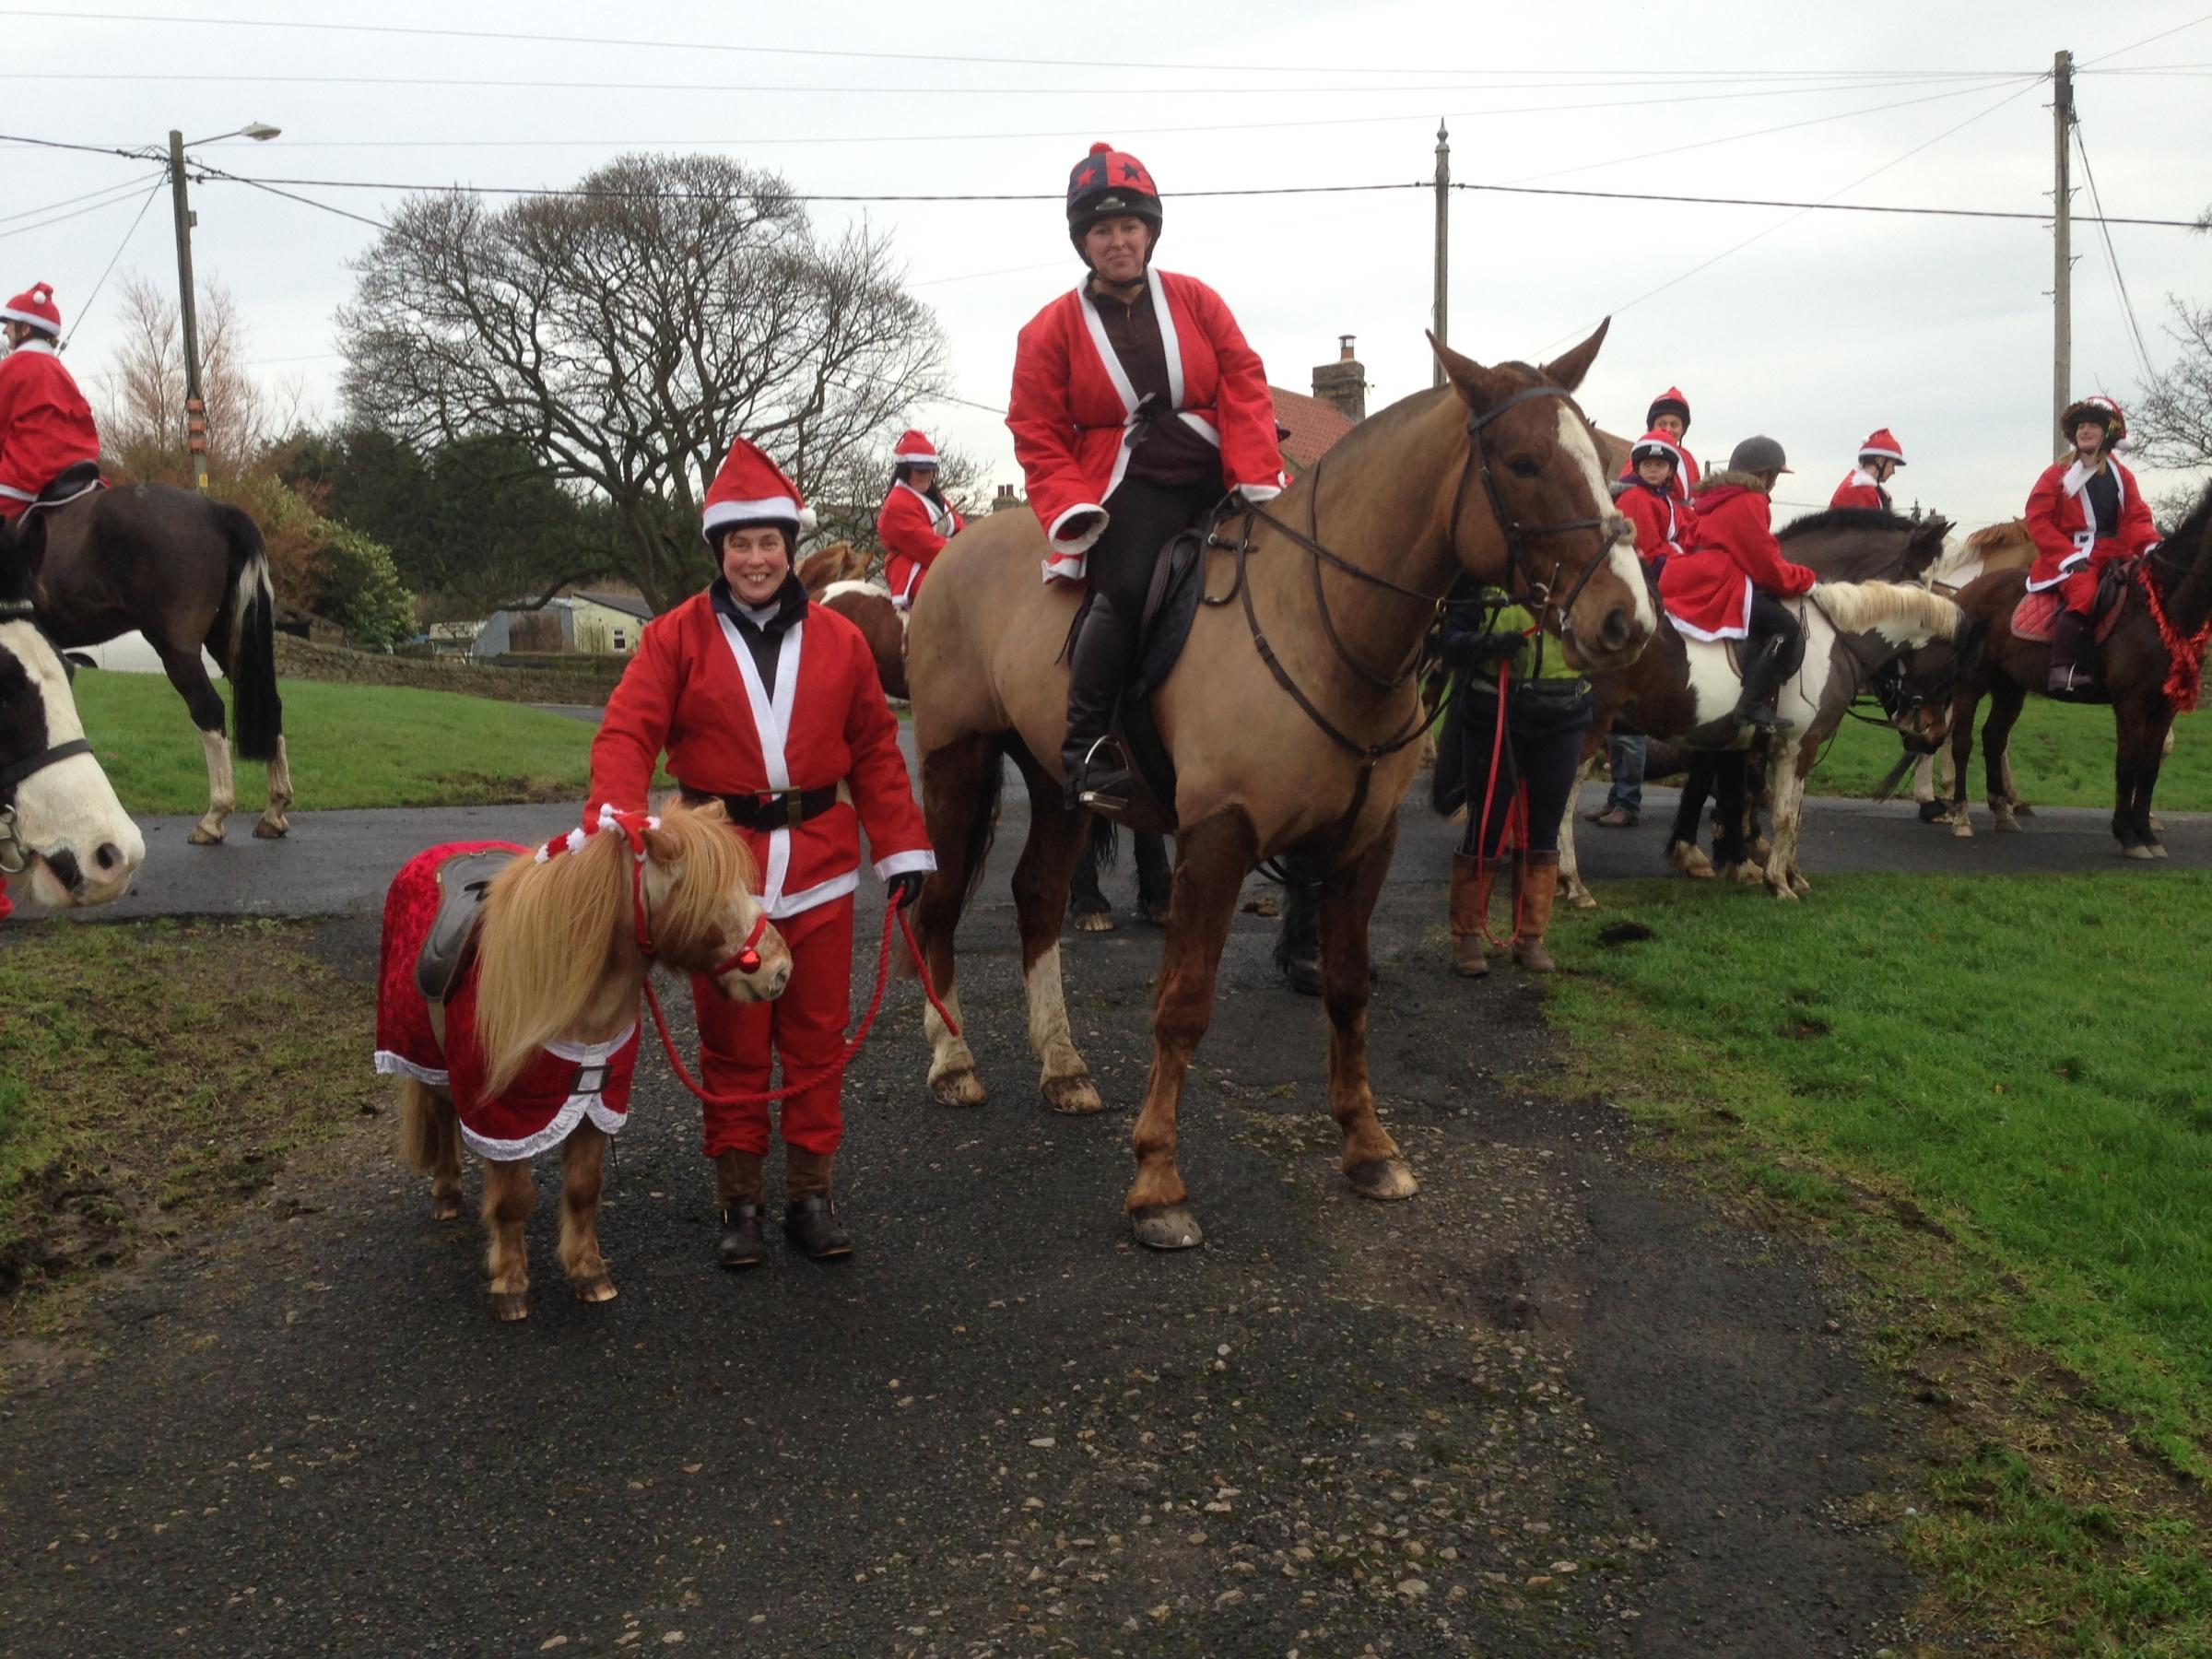 PARADE: The annual mounted Santa parade will take place in Hamsterley on December 23